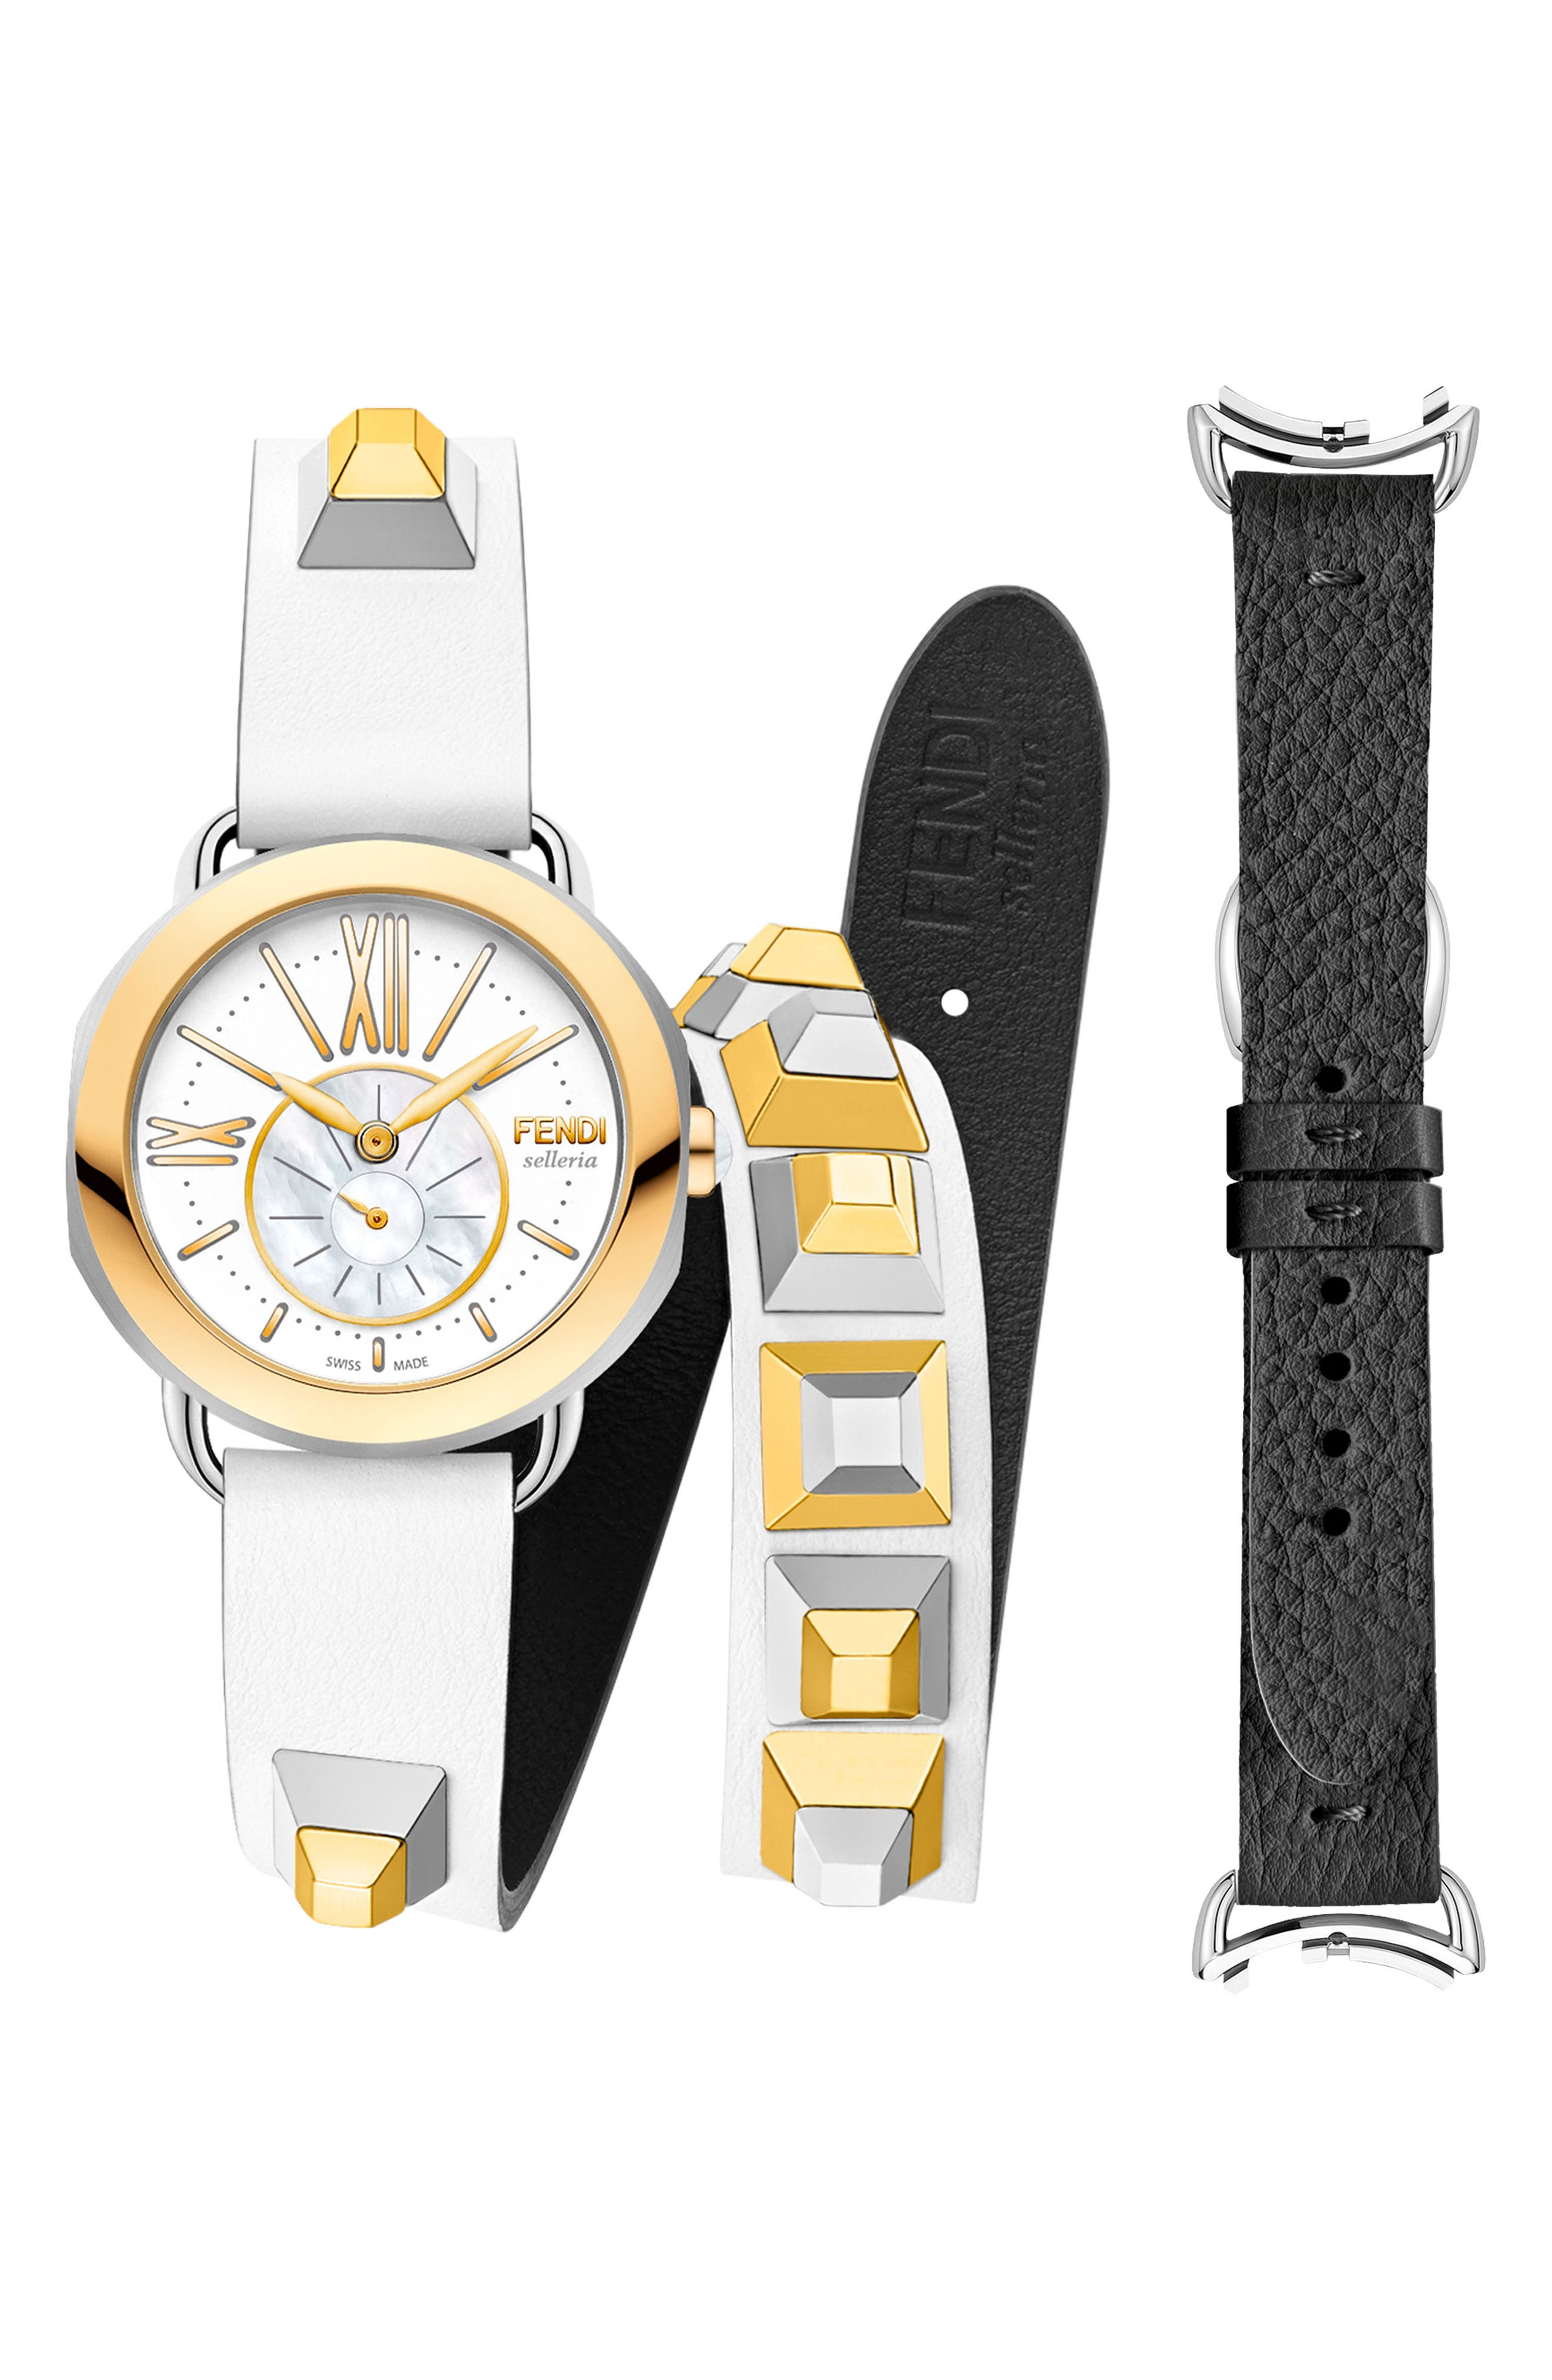 Main Image - Fendi Selleria Round Leather Strap Watch Set, 36mm